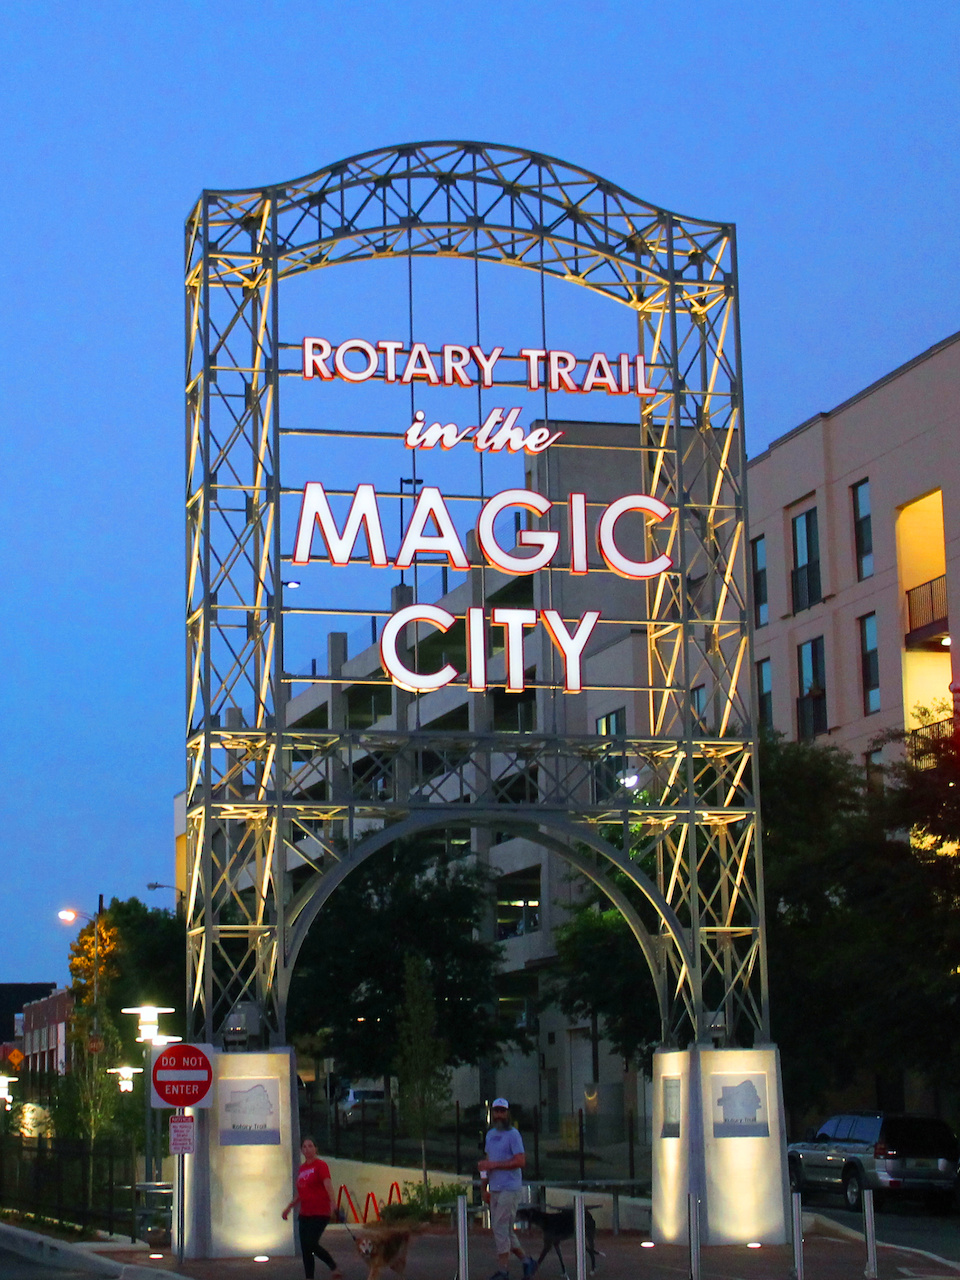 The entrance to the Rotary Trail features this near replica of the iconic sign that used to welcome visitors to the Magic City.